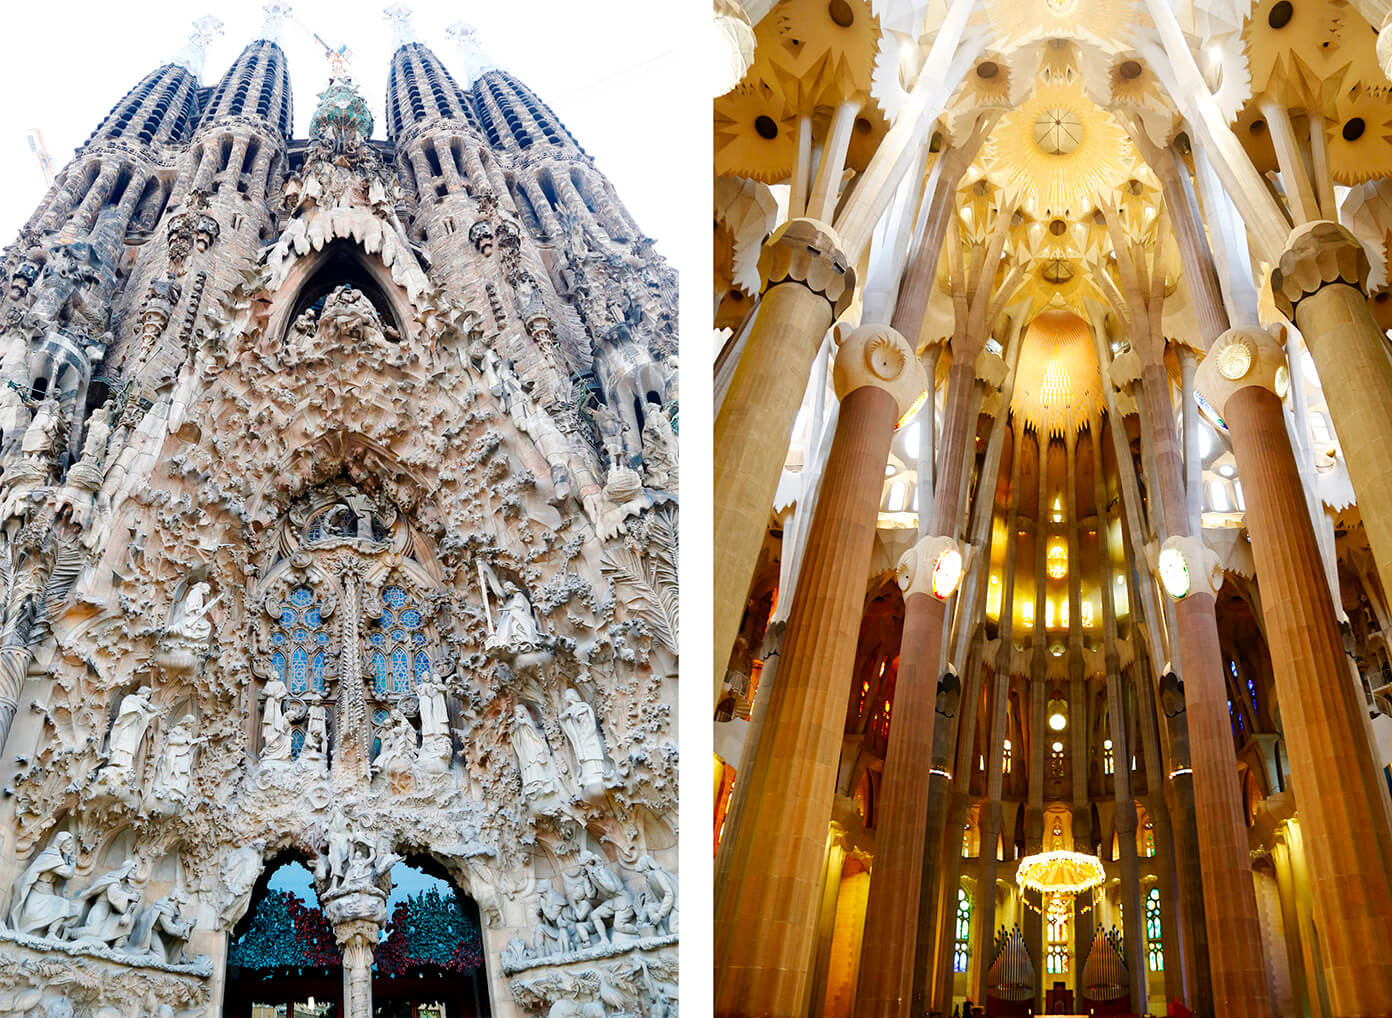 La Sagrada Familia - Gaudi's masterpiece is a must-see | Gimme Some Barcelona Travel Guide